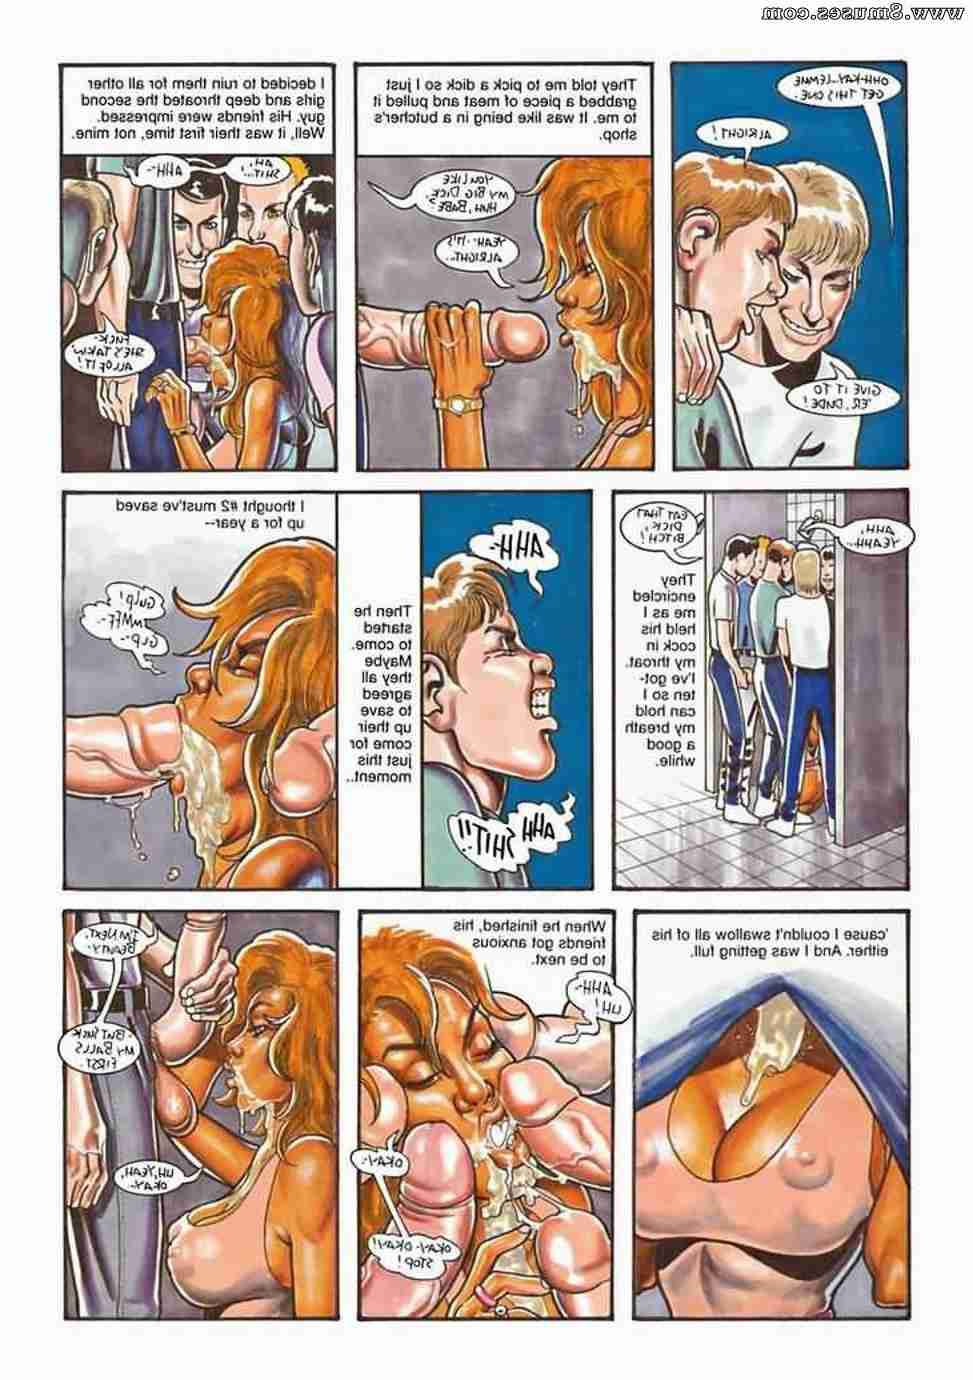 Amerotica-Comics/Part-Time-Lover Part_Time_Lover__8muses_-_Sex_and_Porn_Comics_33.jpg